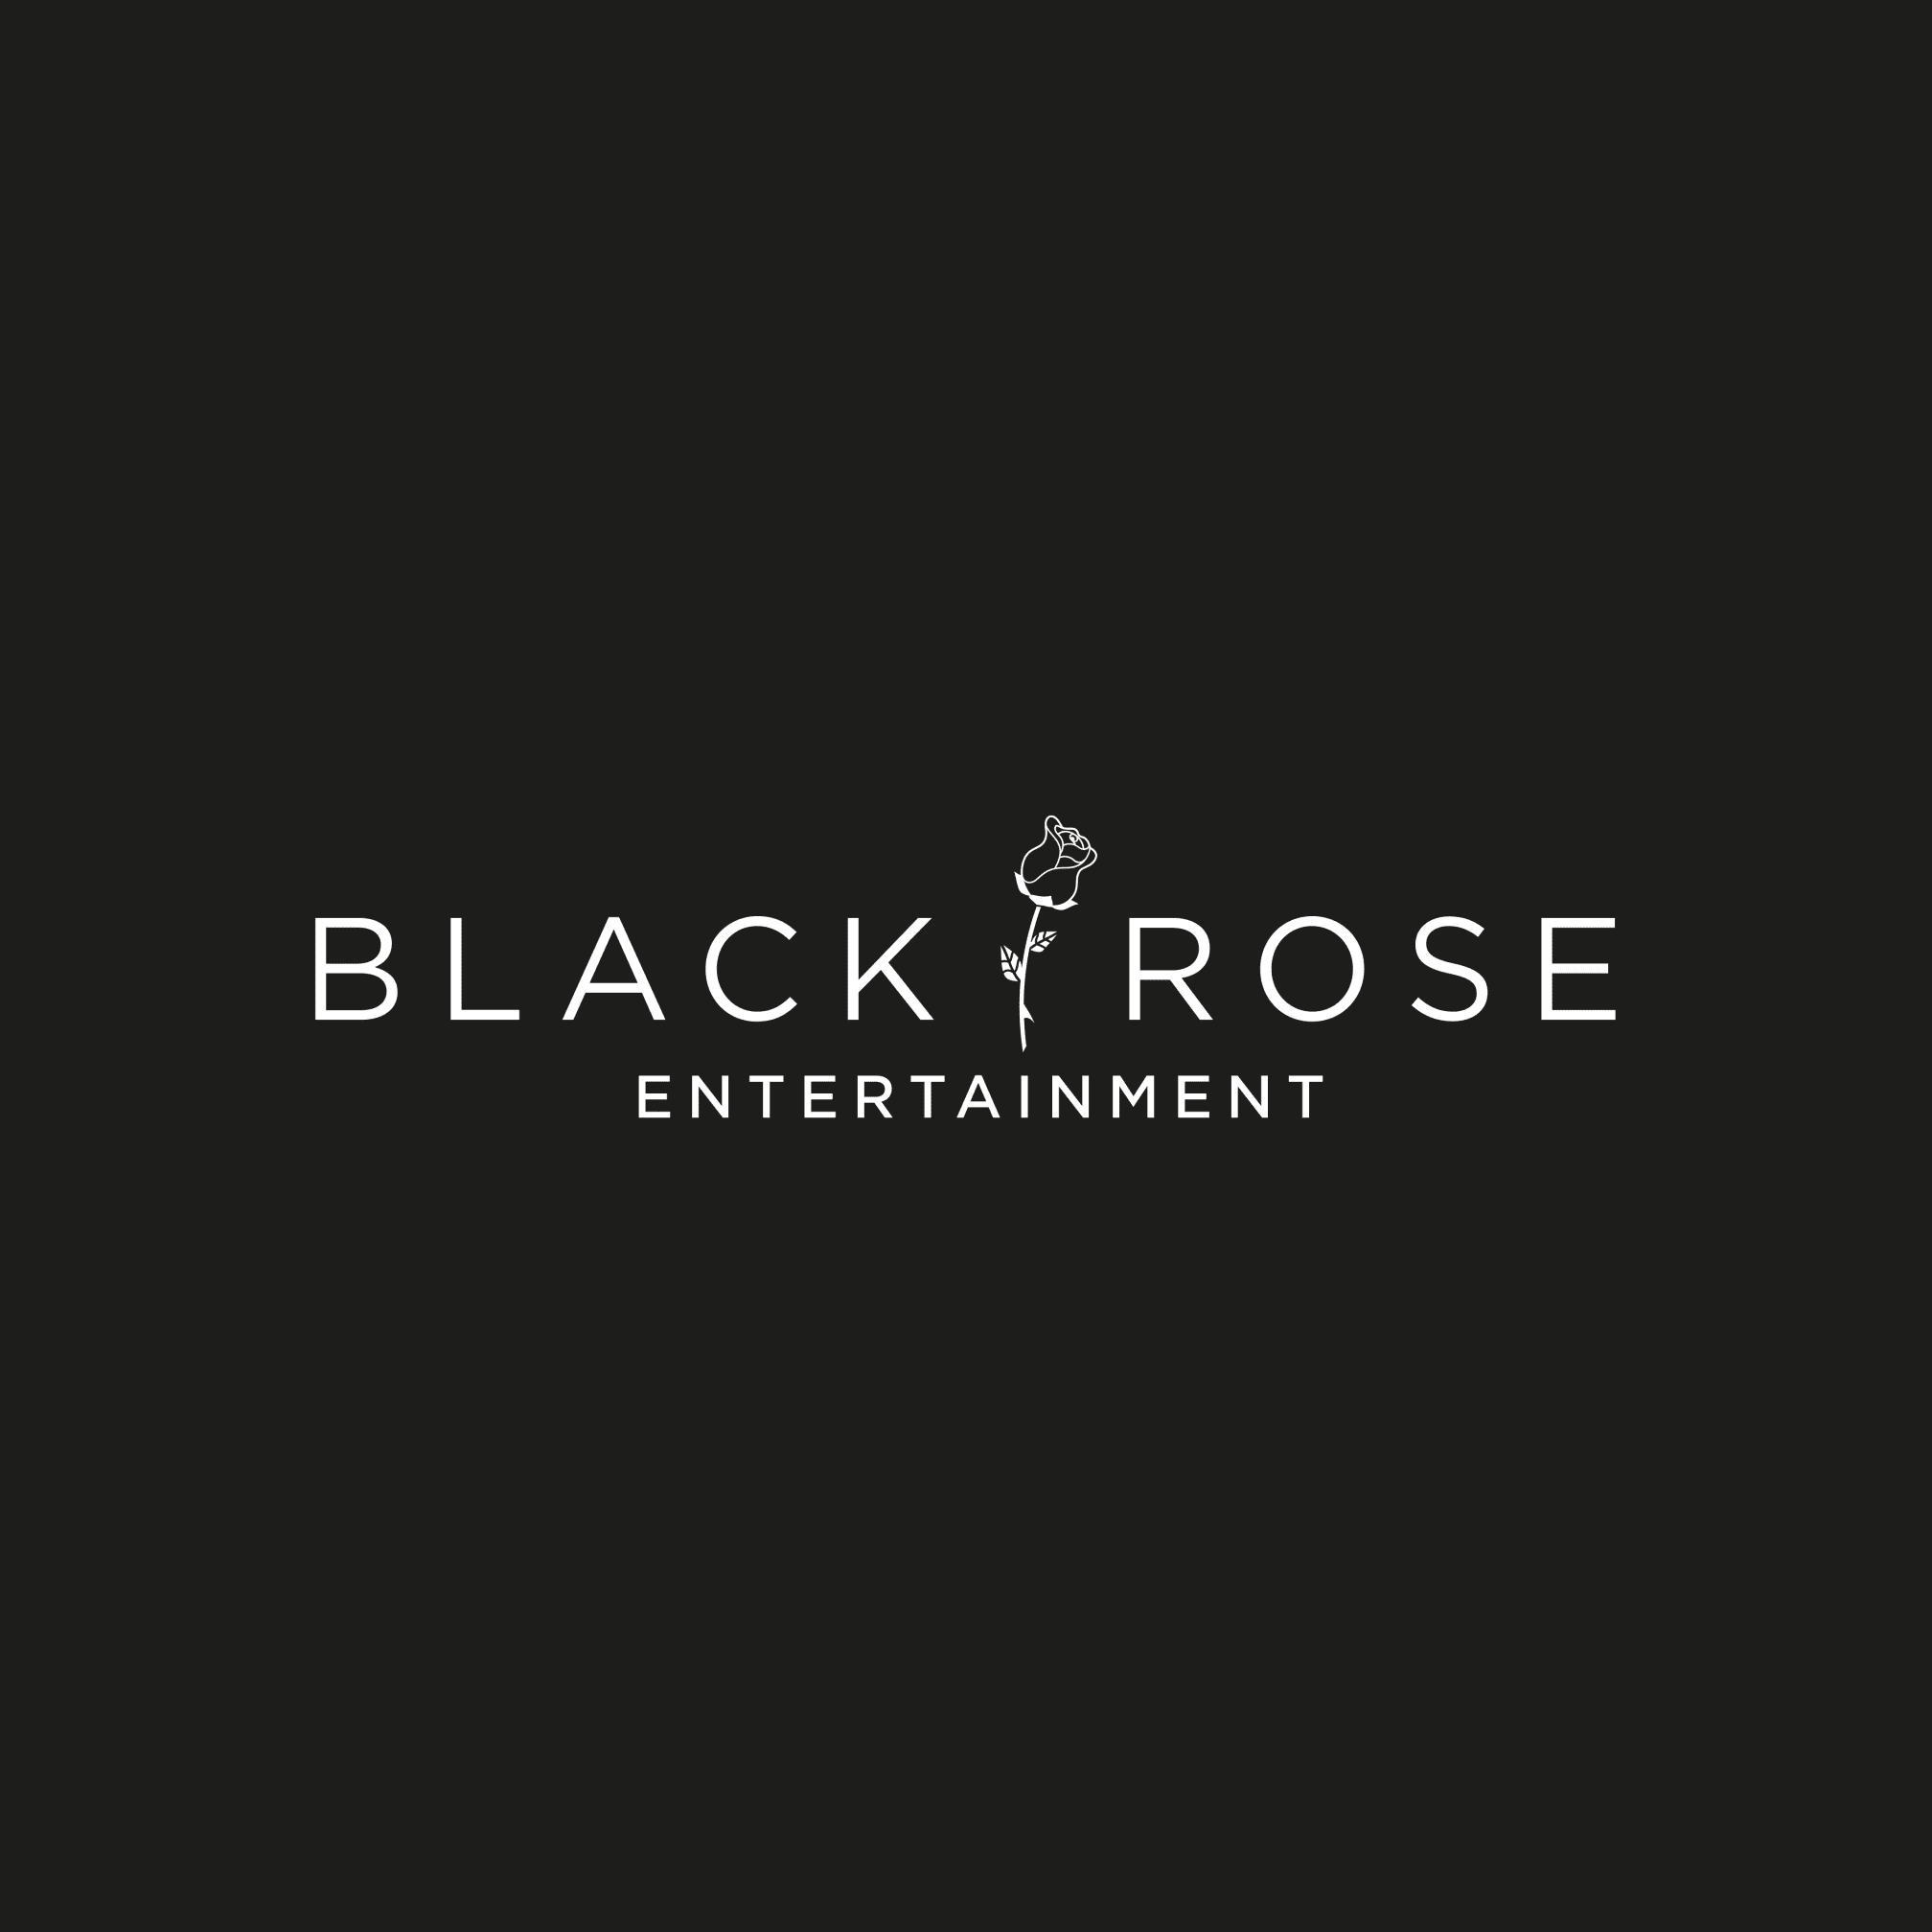 Black Rose Entertainment - Hassocks, West Sussex BN6 9UG - 07749 974743 | ShowMeLocal.com